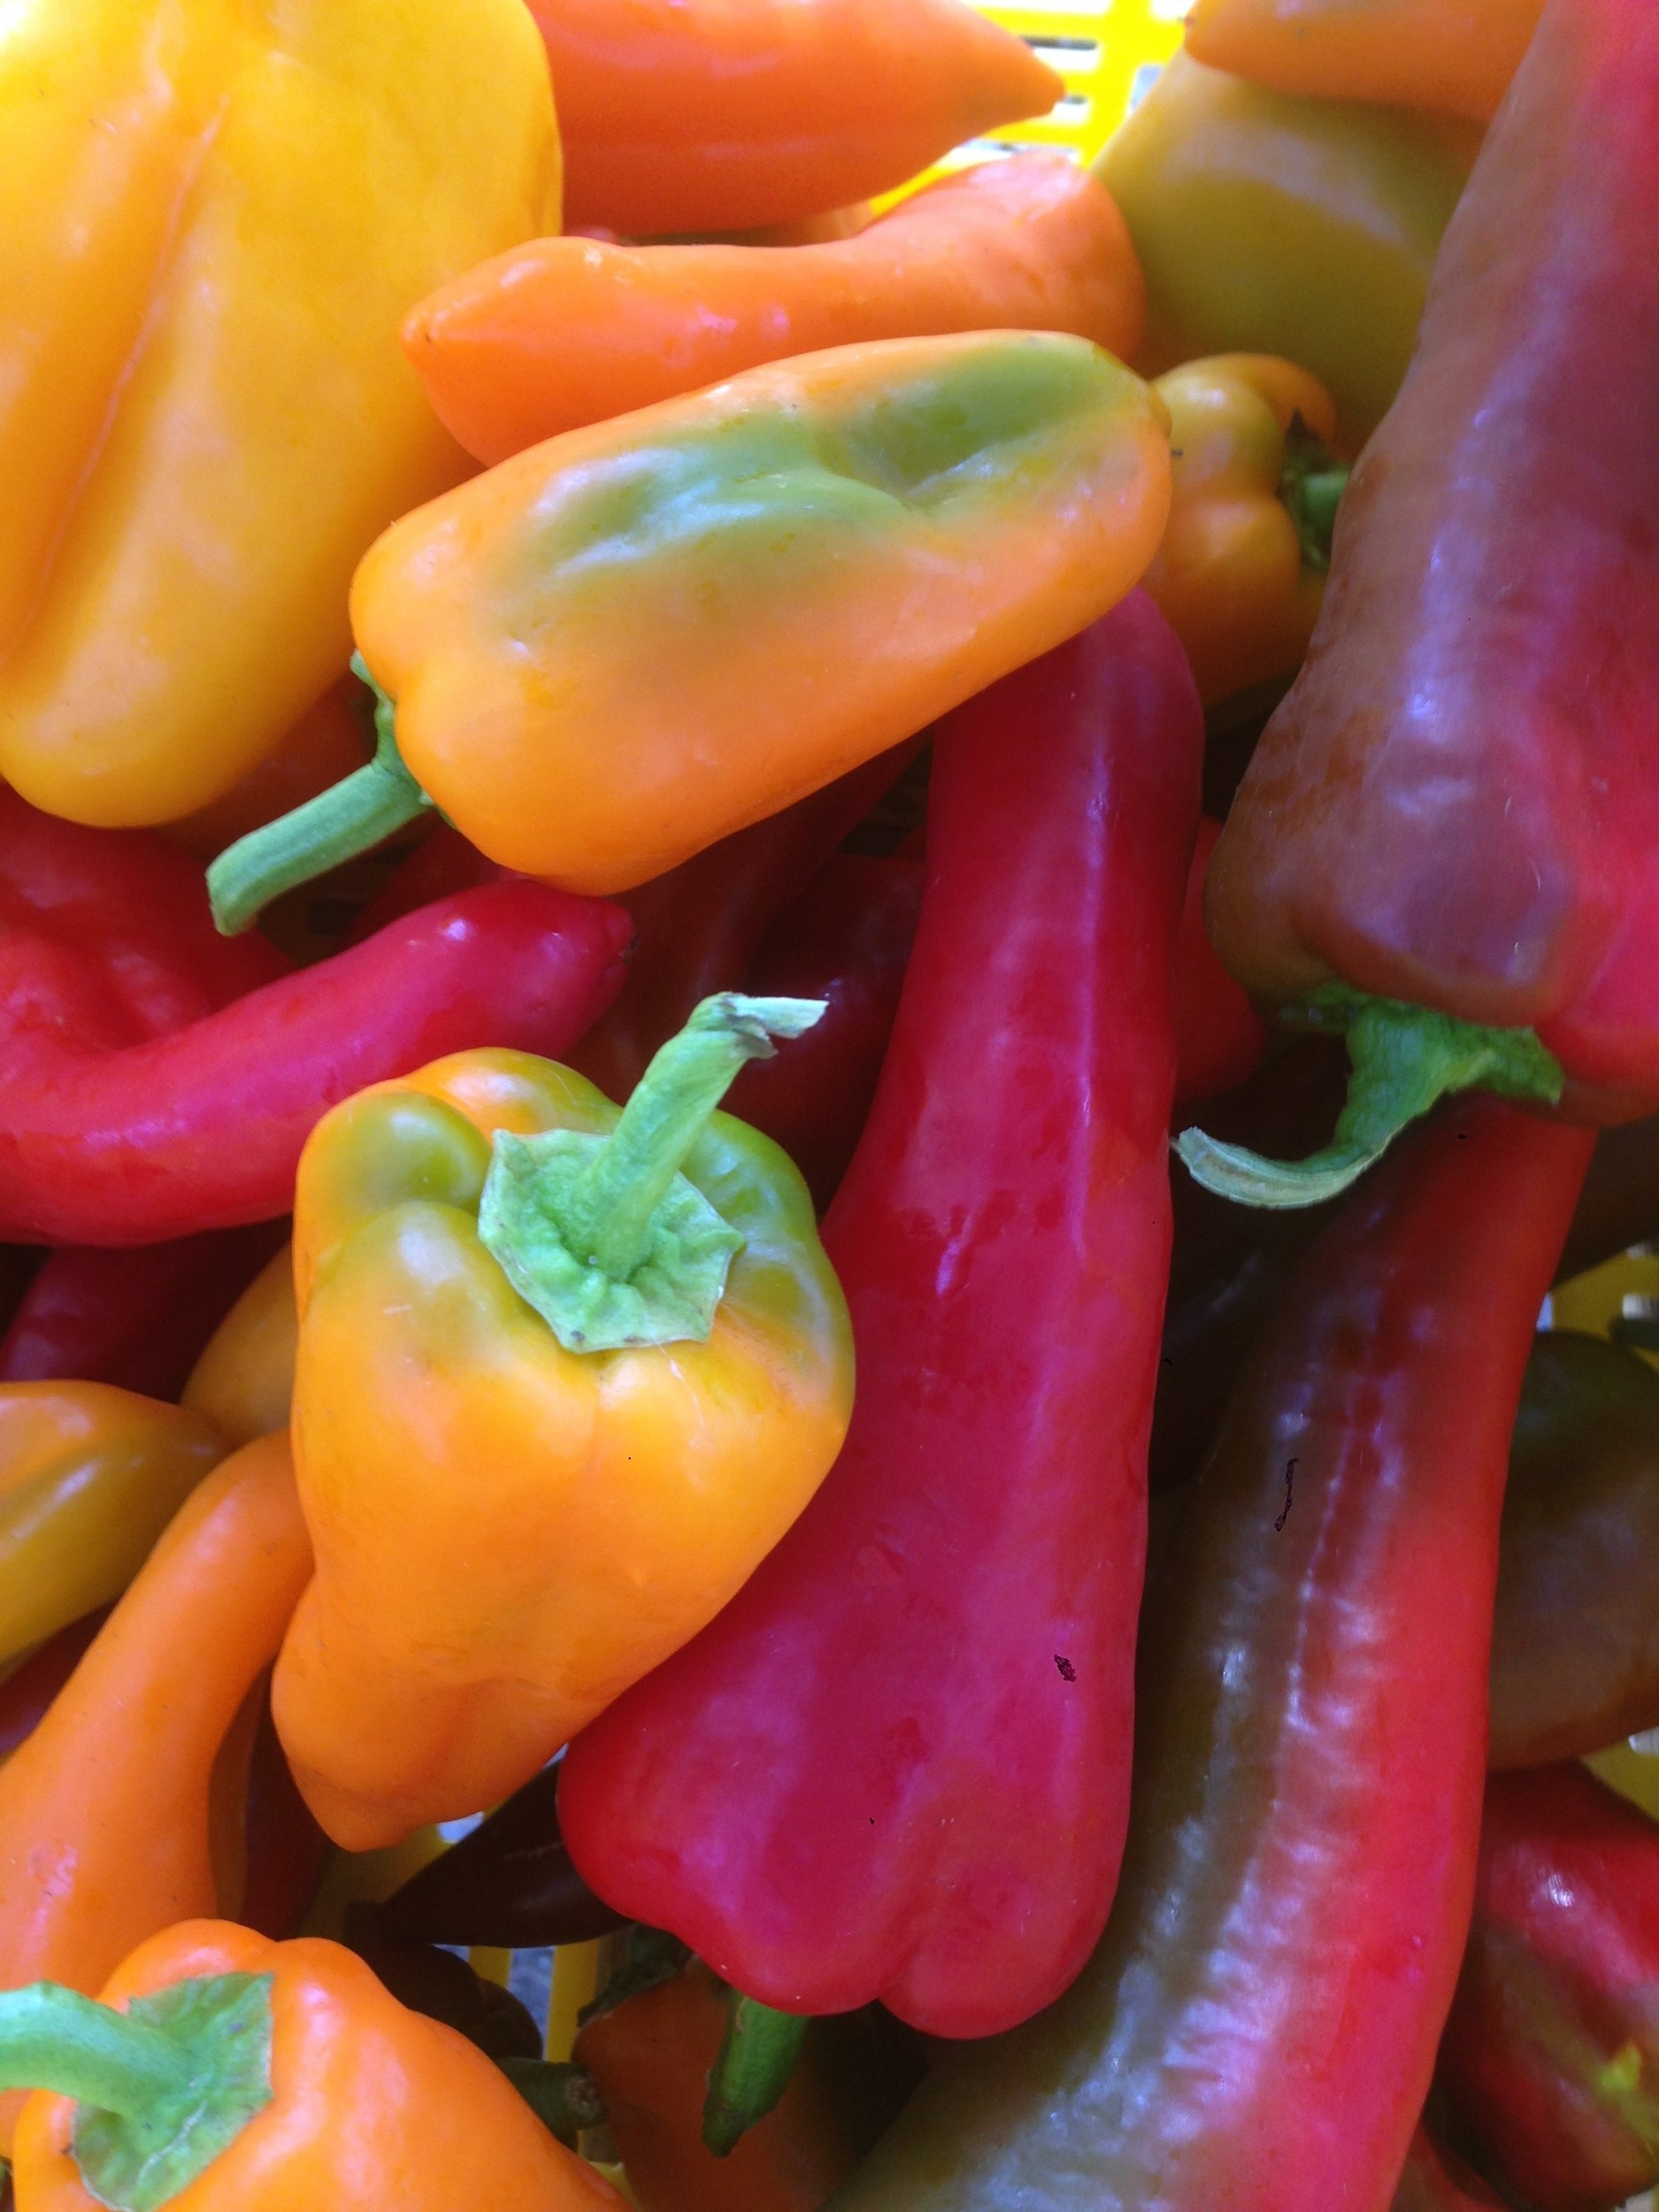 A few of our pepper varieties: Carmen (red),oranos (orange), and flavorburst (yellow) peppers.